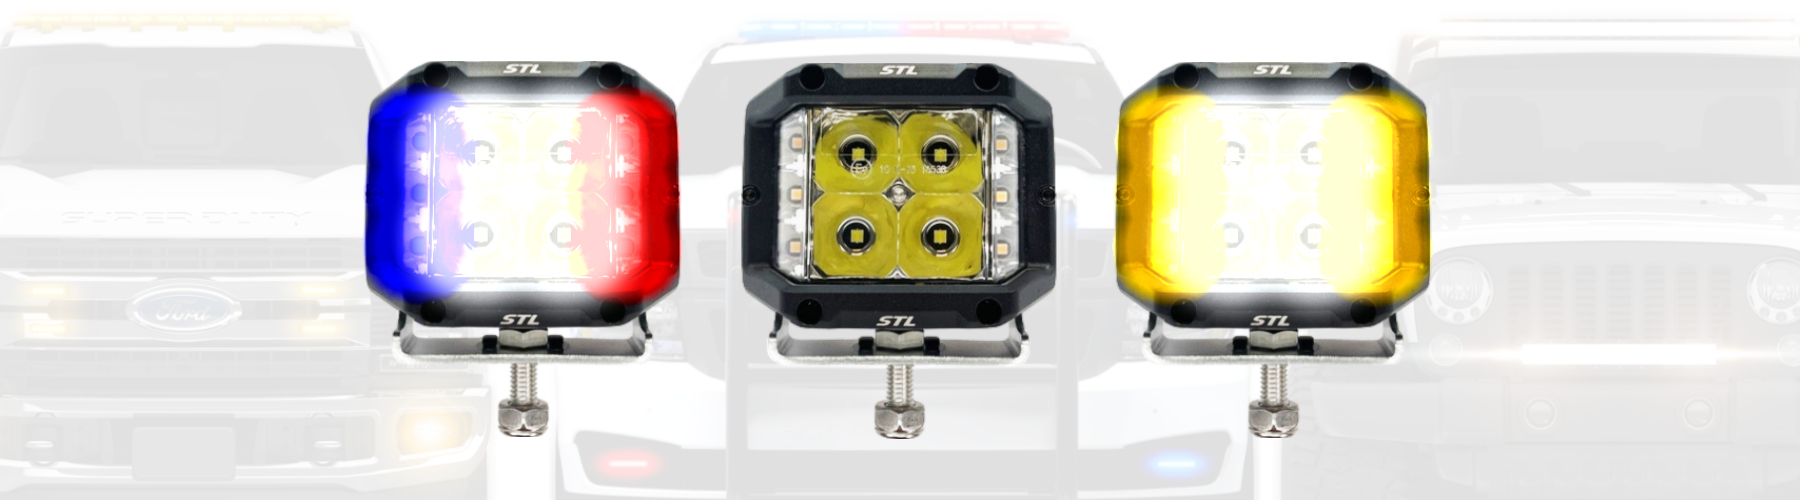 LED Off Road Lights, Off Road Light Bars, Off Road Light Bars on Sale, Running Board LED Lights Sticks